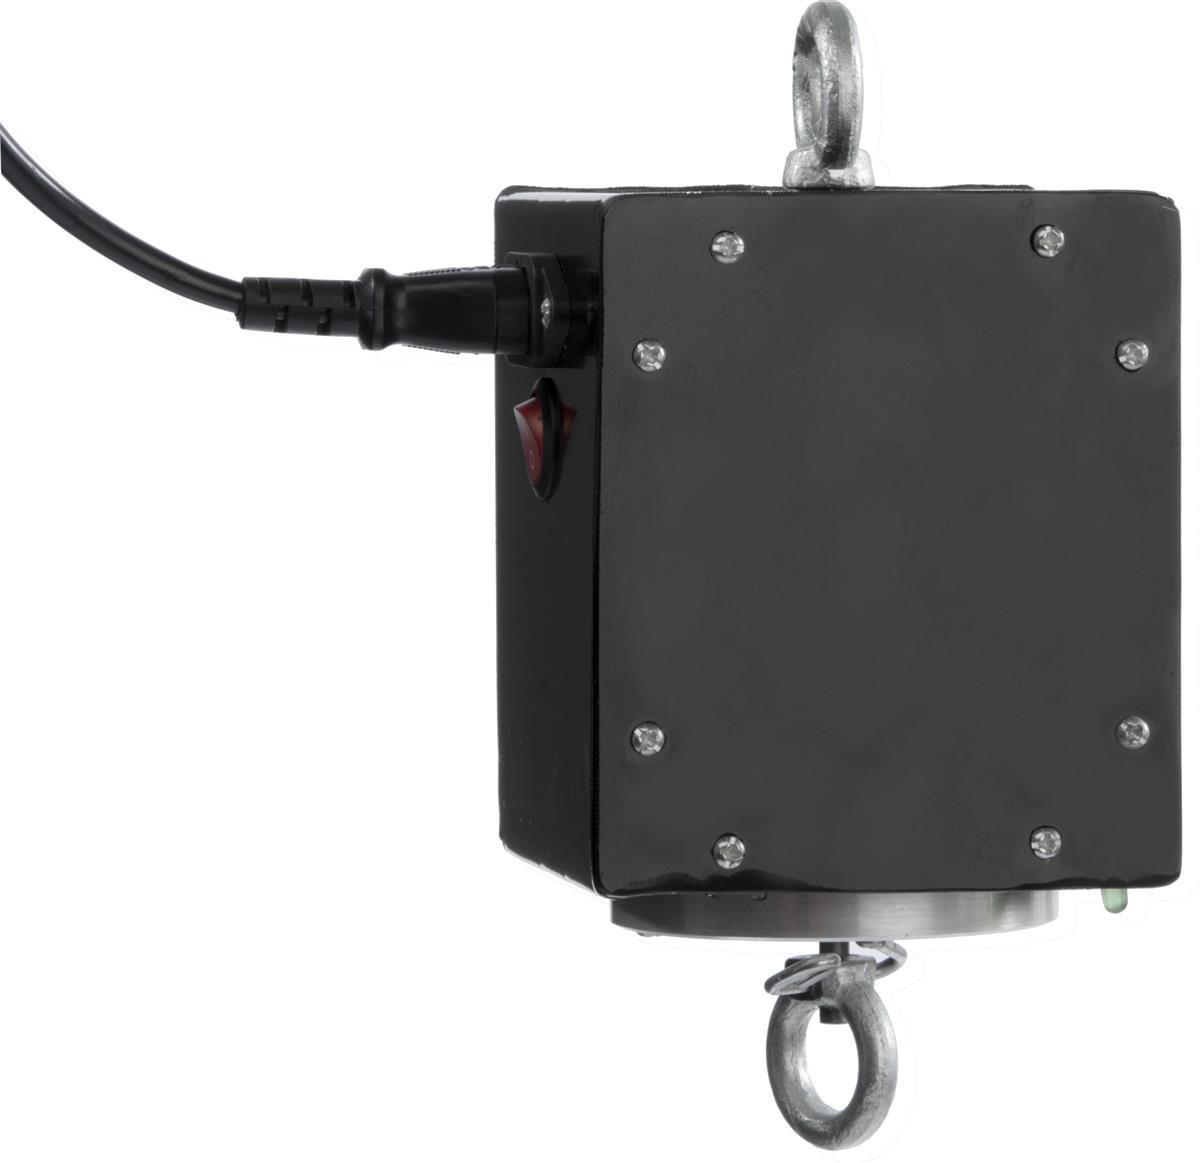 Displays2go Hanging Banner Spinning Motor, Suspends From Ceiling, 2.5 RPM, 15W, 198LB Max Load (Steel/Aluminum) (HNGBNRROT)